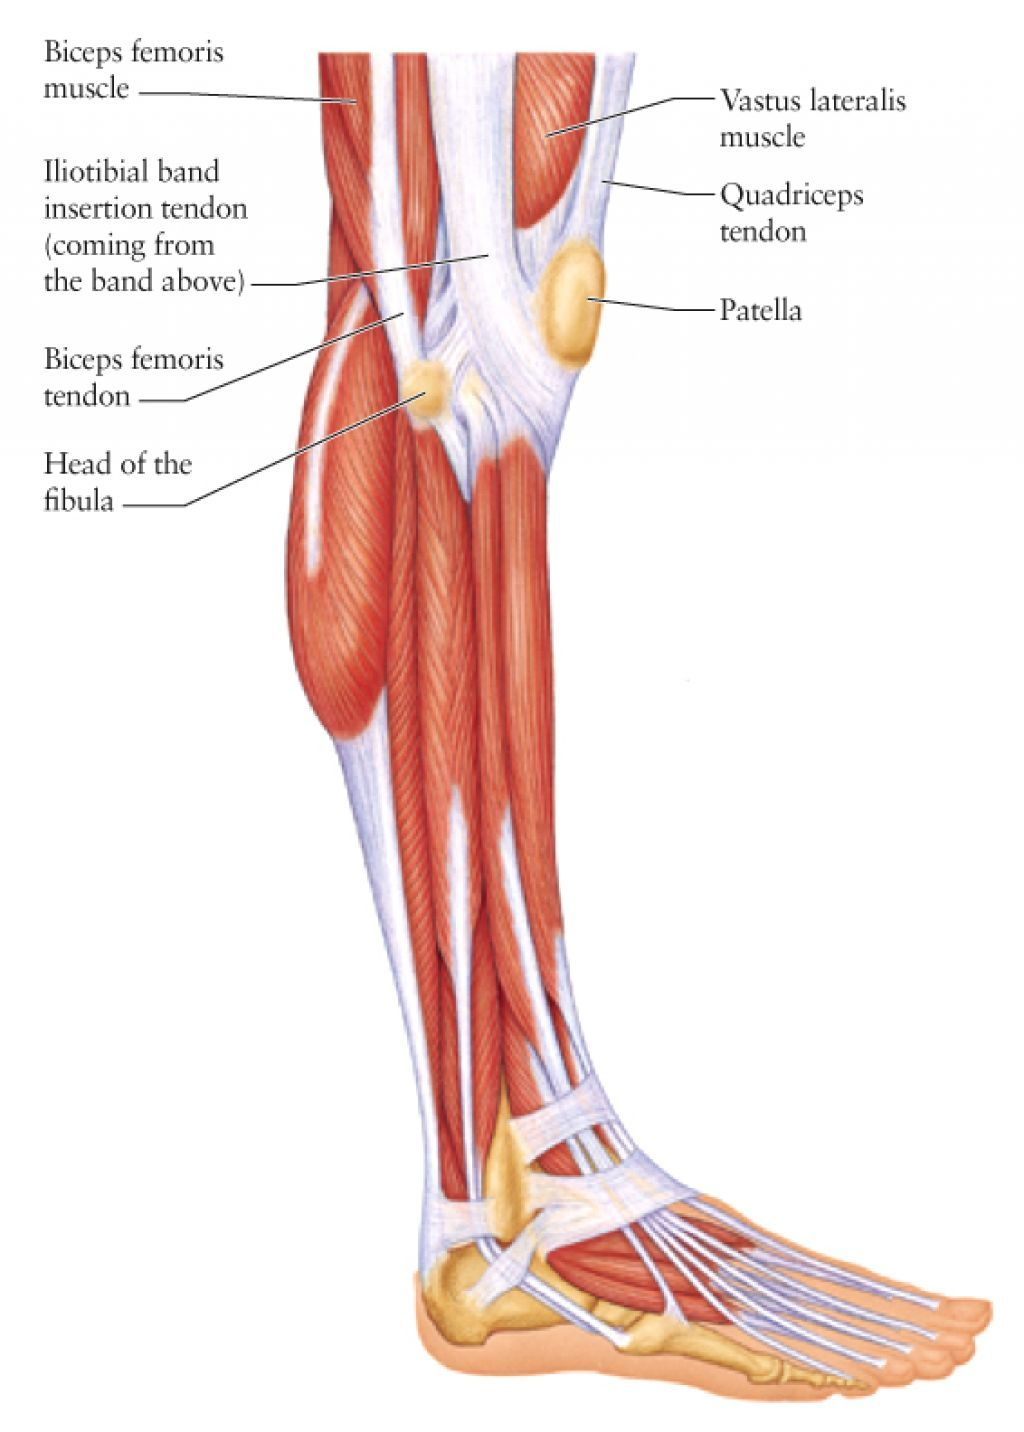 side-view-of-leg-muscles-lower-leg-muscle-anatomy-side-view-a ...